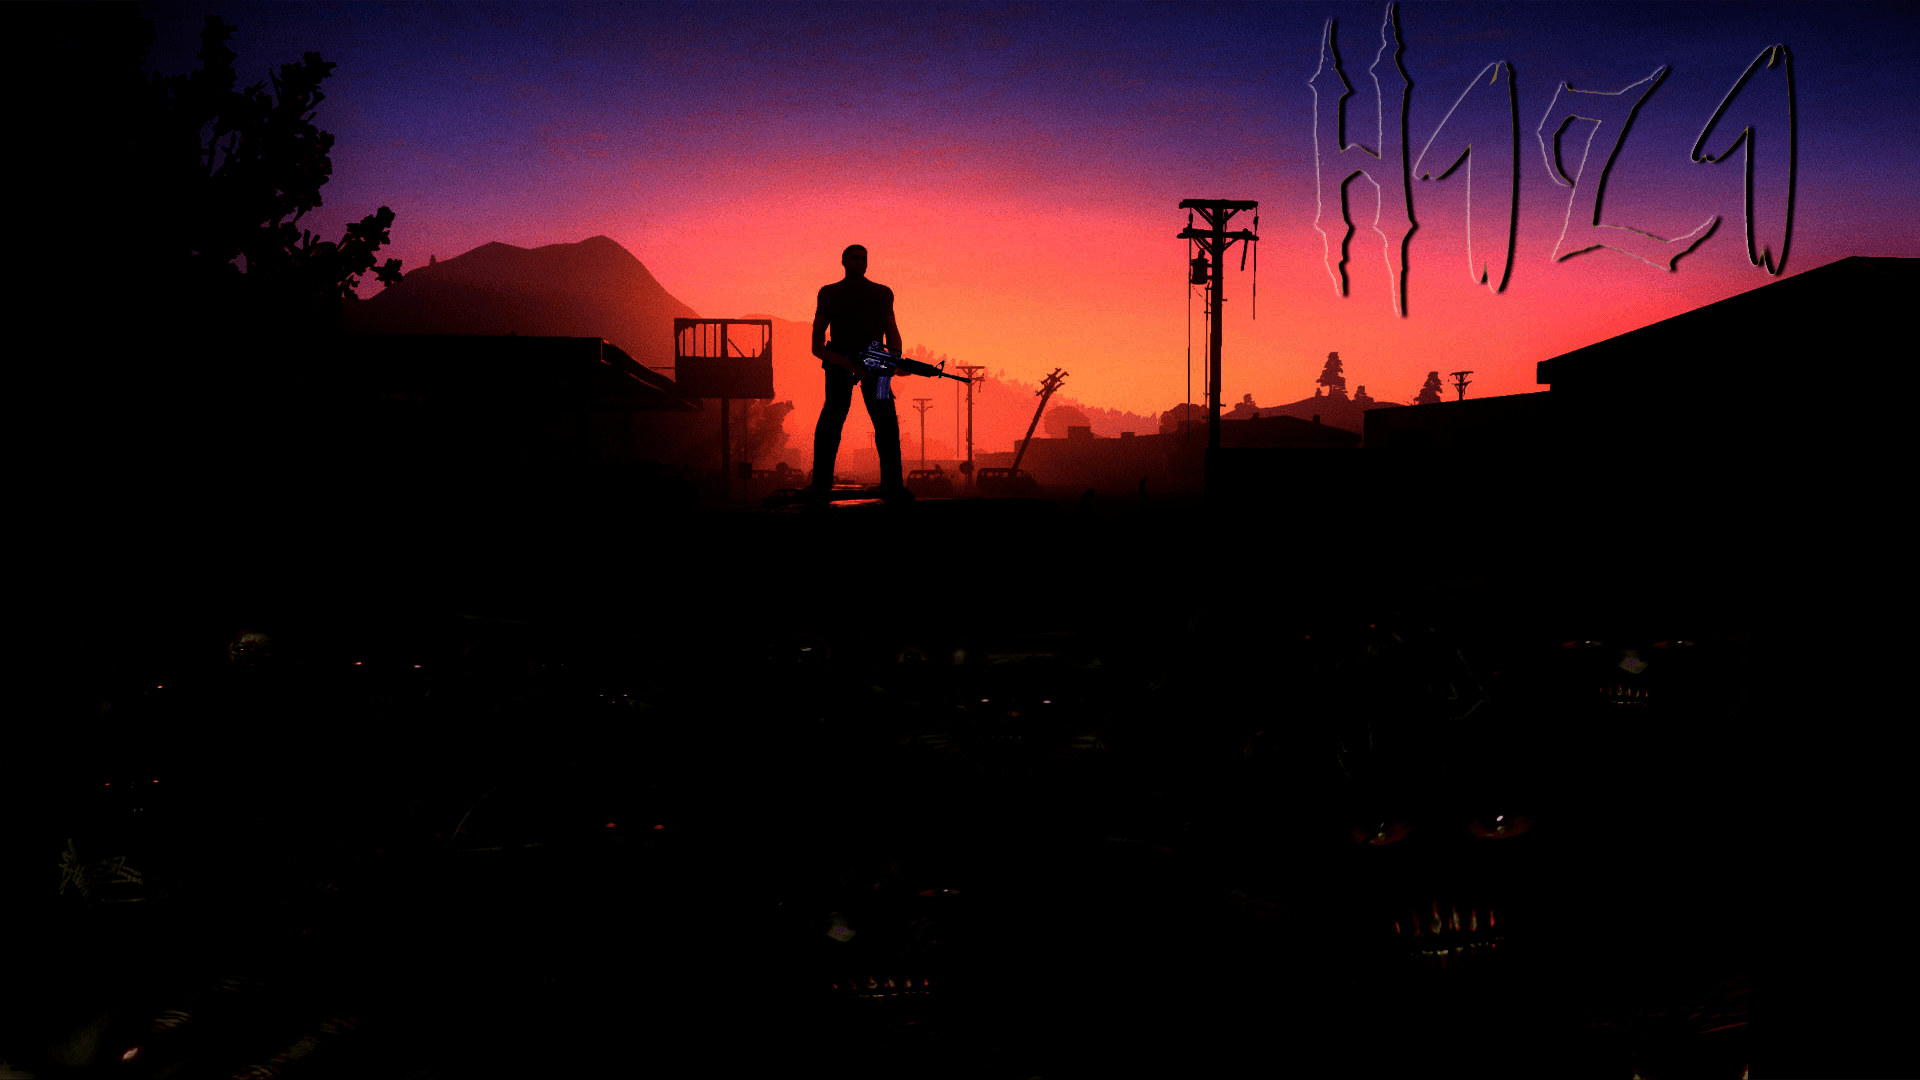 H1Z1 Wallpapers - Top Free H1Z1